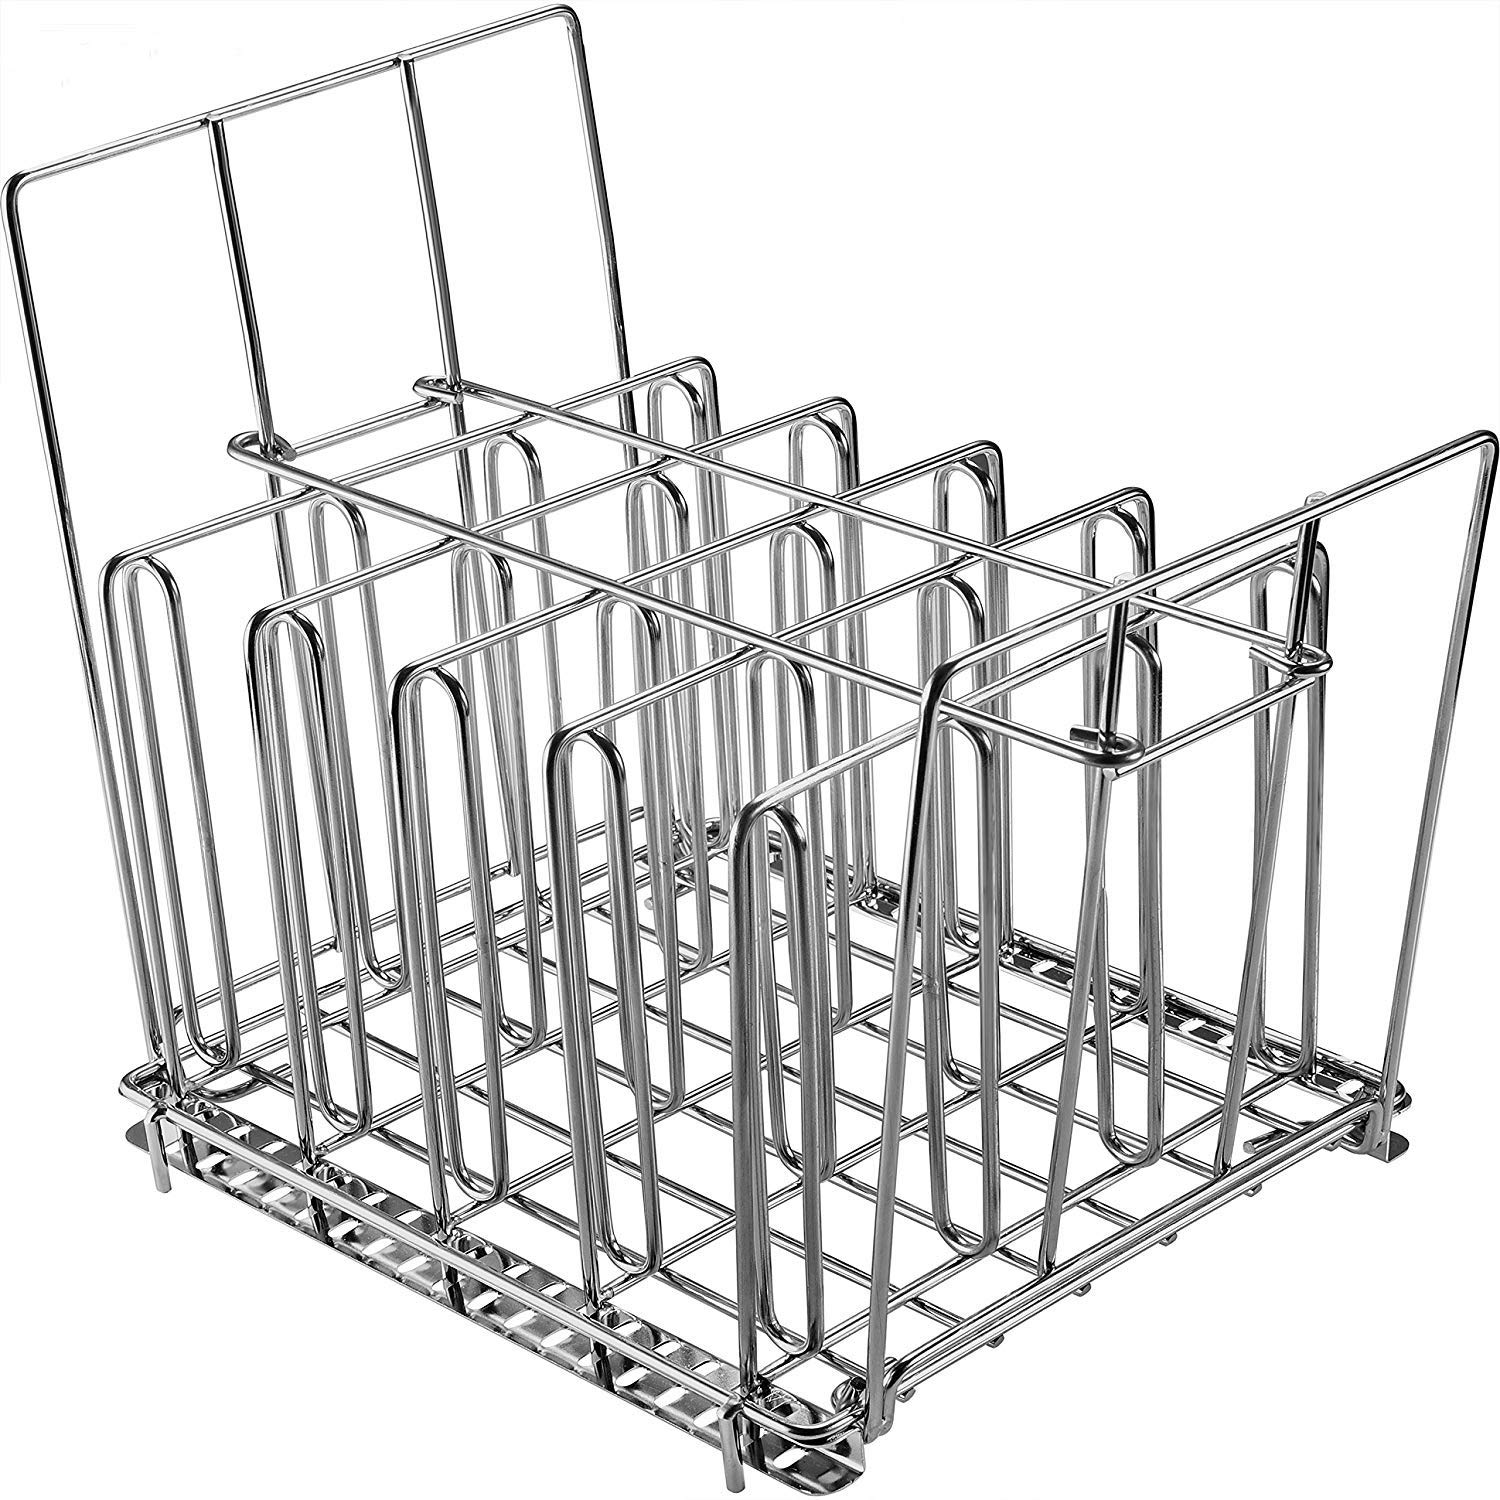 Uarter Sous Vide Rack Stainless Steel for Anova Cookers with Detachable Dividers and 2 No-Float Middle Top Bars, Adjustable, Collapsible Weight-Added Sou Vide Rack for Most 12qt Containers by Uarter